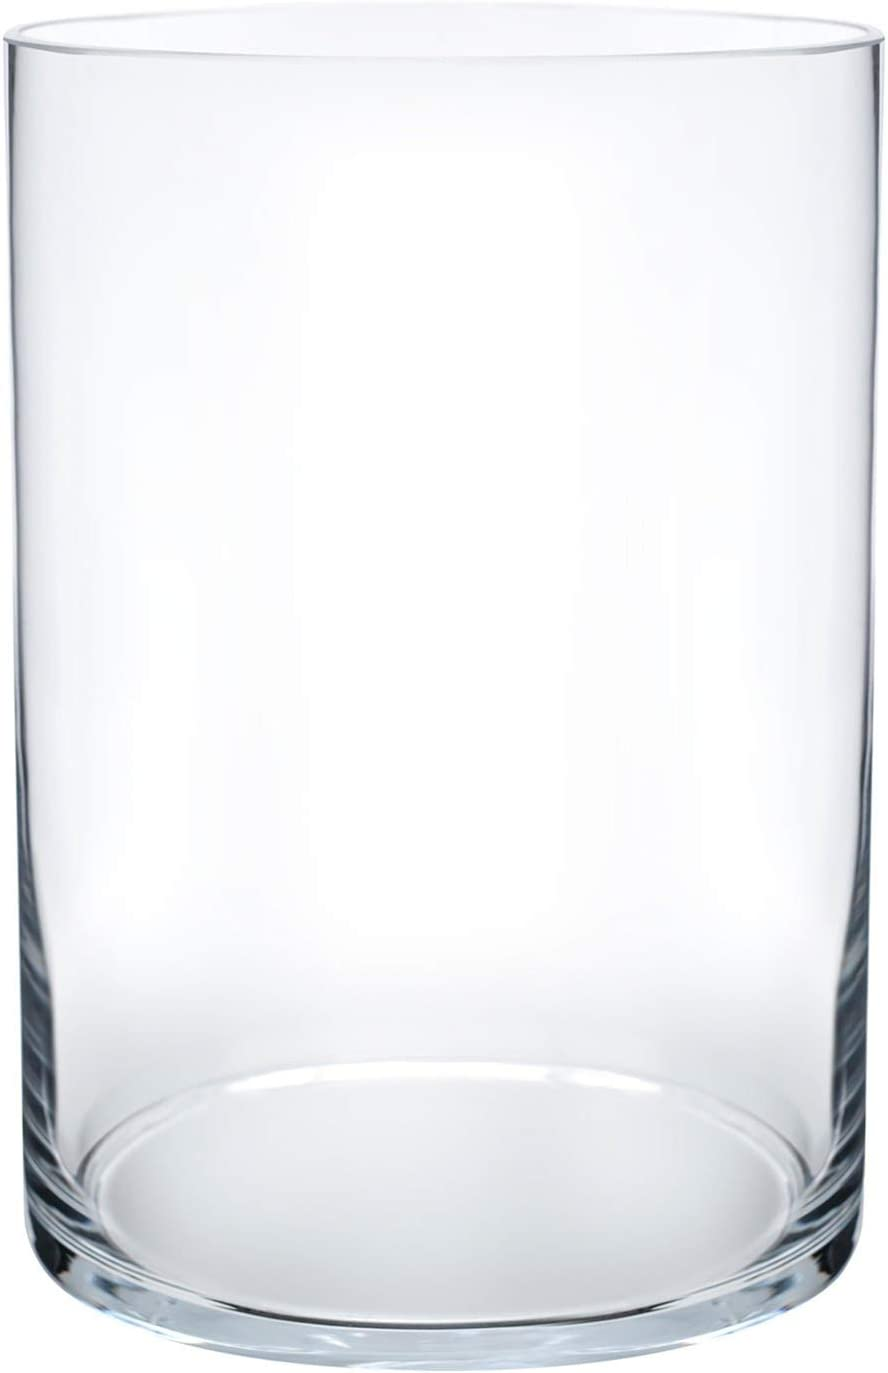 "Royal Imports Flower Glass Vase Decorative Centerpiece for Home or Wedding Cylinder Shape, 8"" Tall, 5"" Opening, Clear"